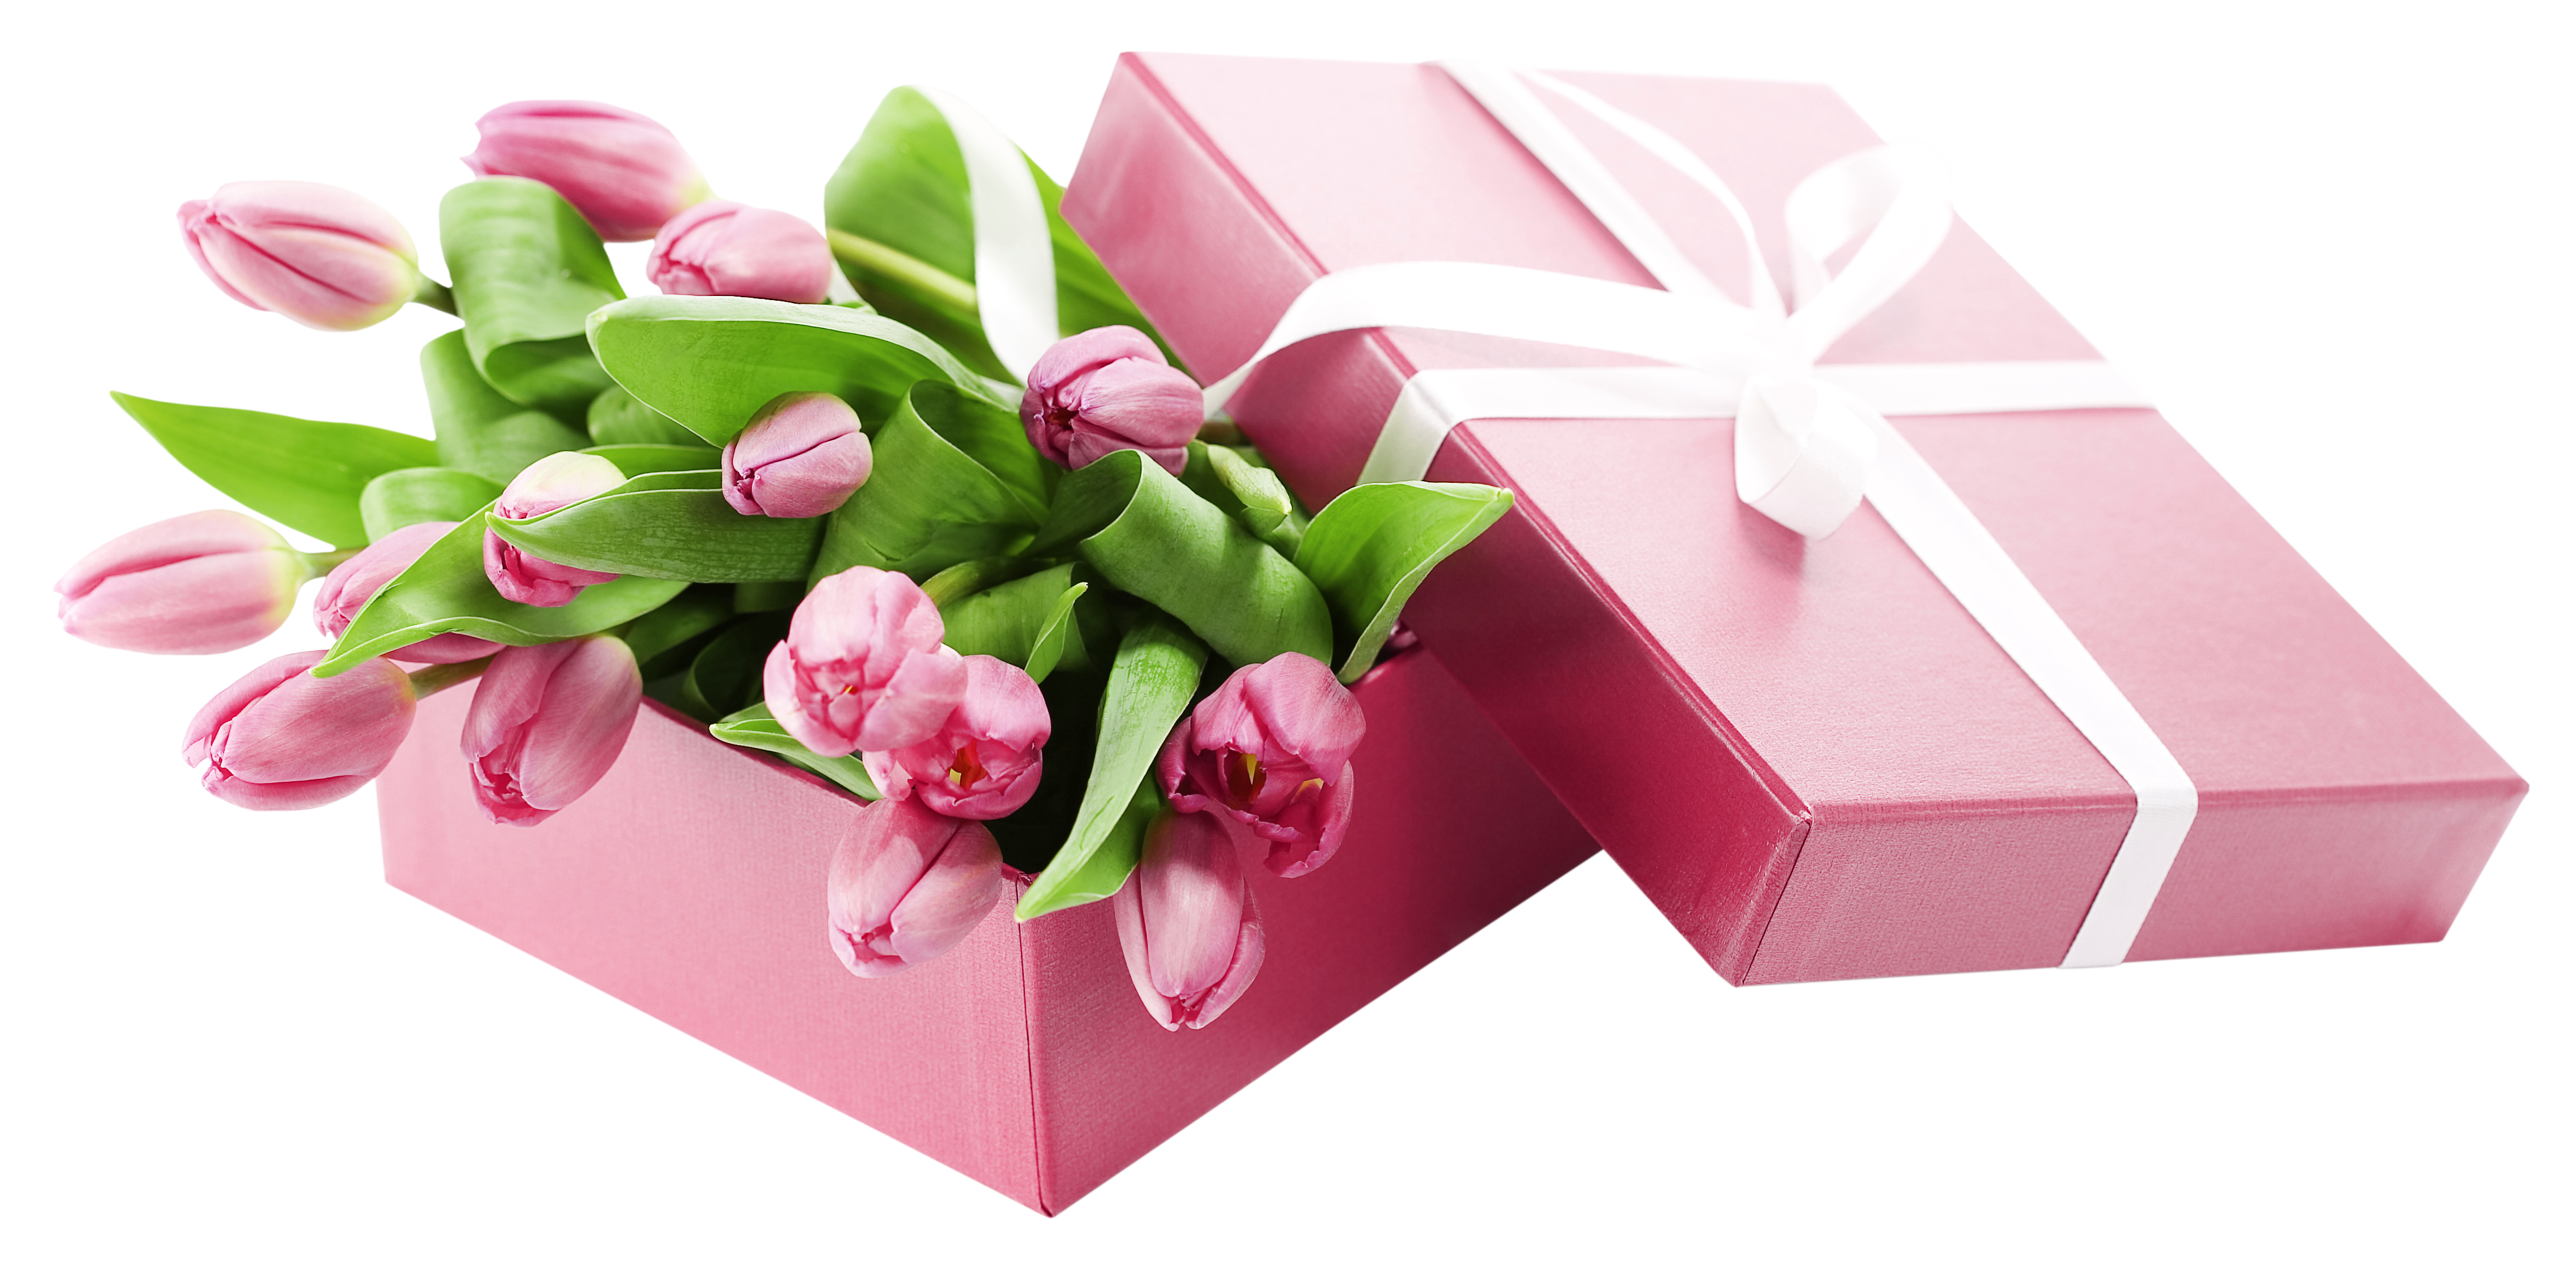 Flower box png. With pink tulips transparent